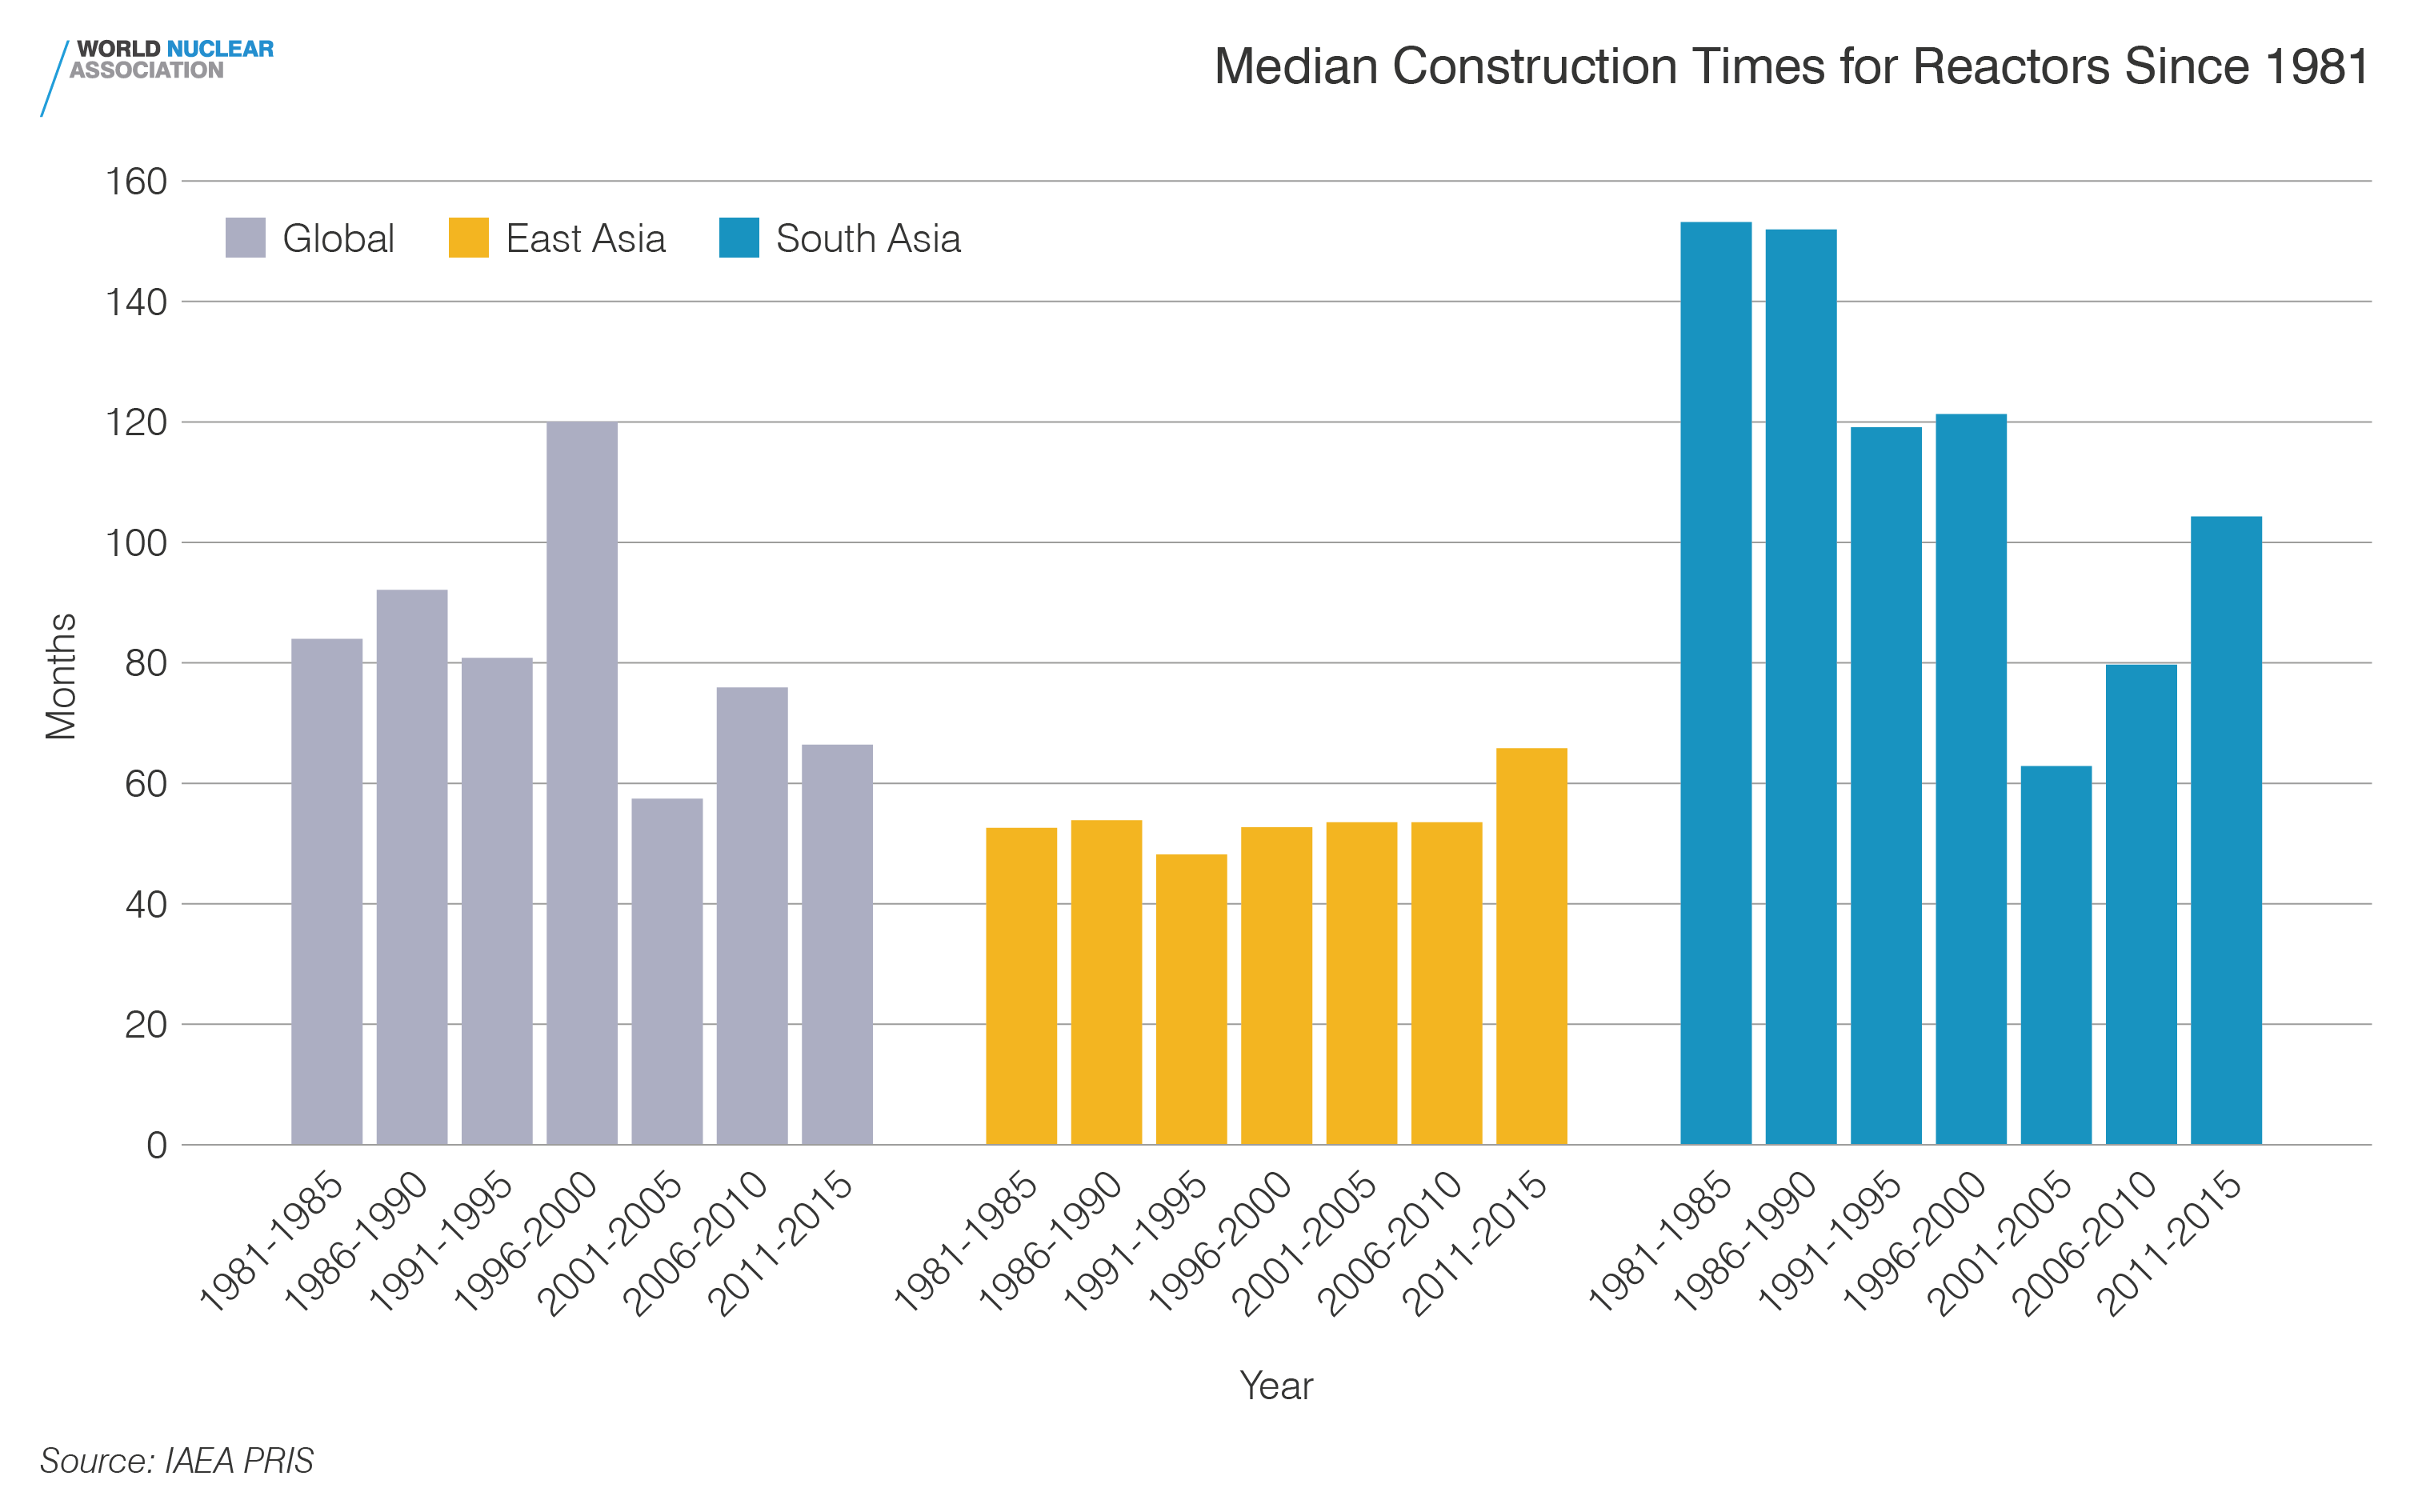 Median construction times for reactors in Asia since 1981